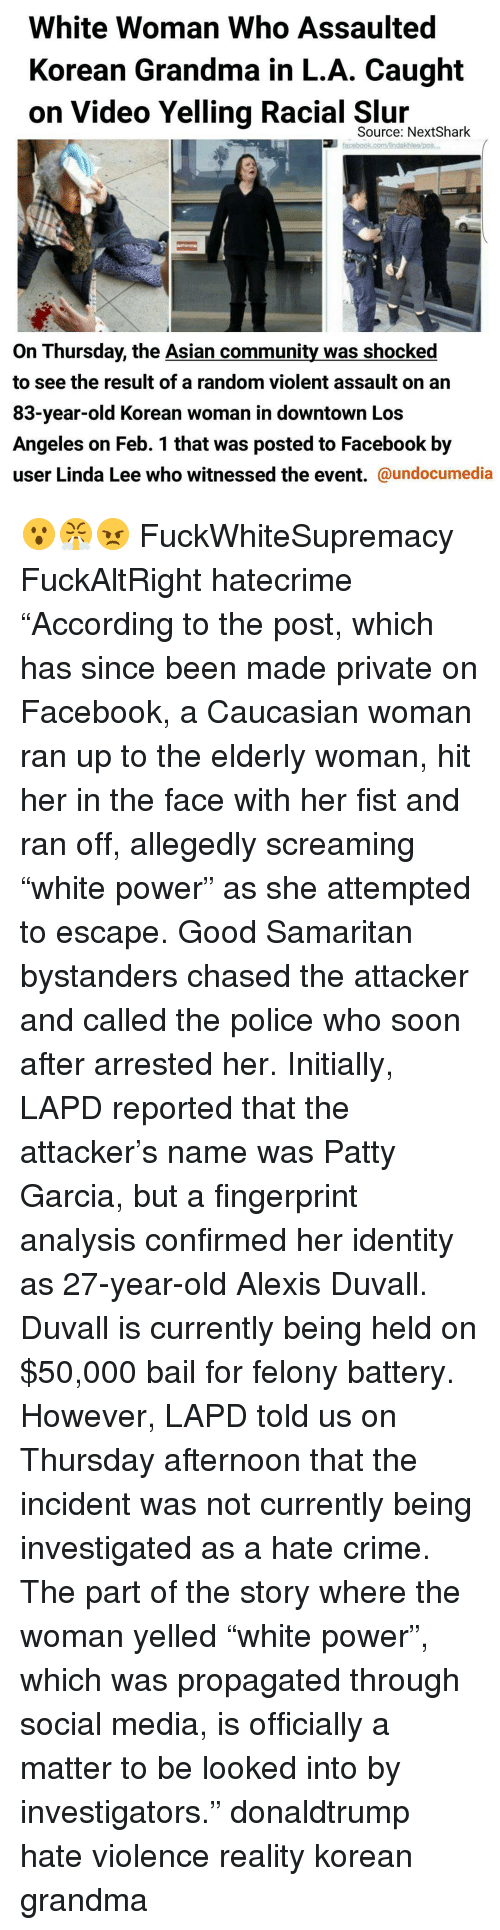 "Initialisms: White Woman Who Assaulted  Korean Grandma in L.A. Caught  on Video Yelling Racial Source: Next Shark  facebook comAndakhlealpos,  On Thursday, the Asian community was shocked  to see the result of a random violent assault on an  83-year-old Korean woman in downtown Los  Angeles on Feb. 1 that was posted to Facebook by  user Linda Lee who witnessed the event.  @undocumedia 😮😤😠 FuckWhiteSupremacy FuckAltRight hatecrime ""According to the post, which has since been made private on Facebook, a Caucasian woman ran up to the elderly woman, hit her in the face with her fist and ran off, allegedly screaming ""white power"" as she attempted to escape. Good Samaritan bystanders chased the attacker and called the police who soon after arrested her. Initially, LAPD reported that the attacker's name was Patty Garcia, but a fingerprint analysis confirmed her identity as 27-year-old Alexis Duvall. Duvall is currently being held on $50,000 bail for felony battery. However, LAPD told us on Thursday afternoon that the incident was not currently being investigated as a hate crime. The part of the story where the woman yelled ""white power"", which was propagated through social media, is officially a matter to be looked into by investigators."" donaldtrump hate violence reality korean grandma"